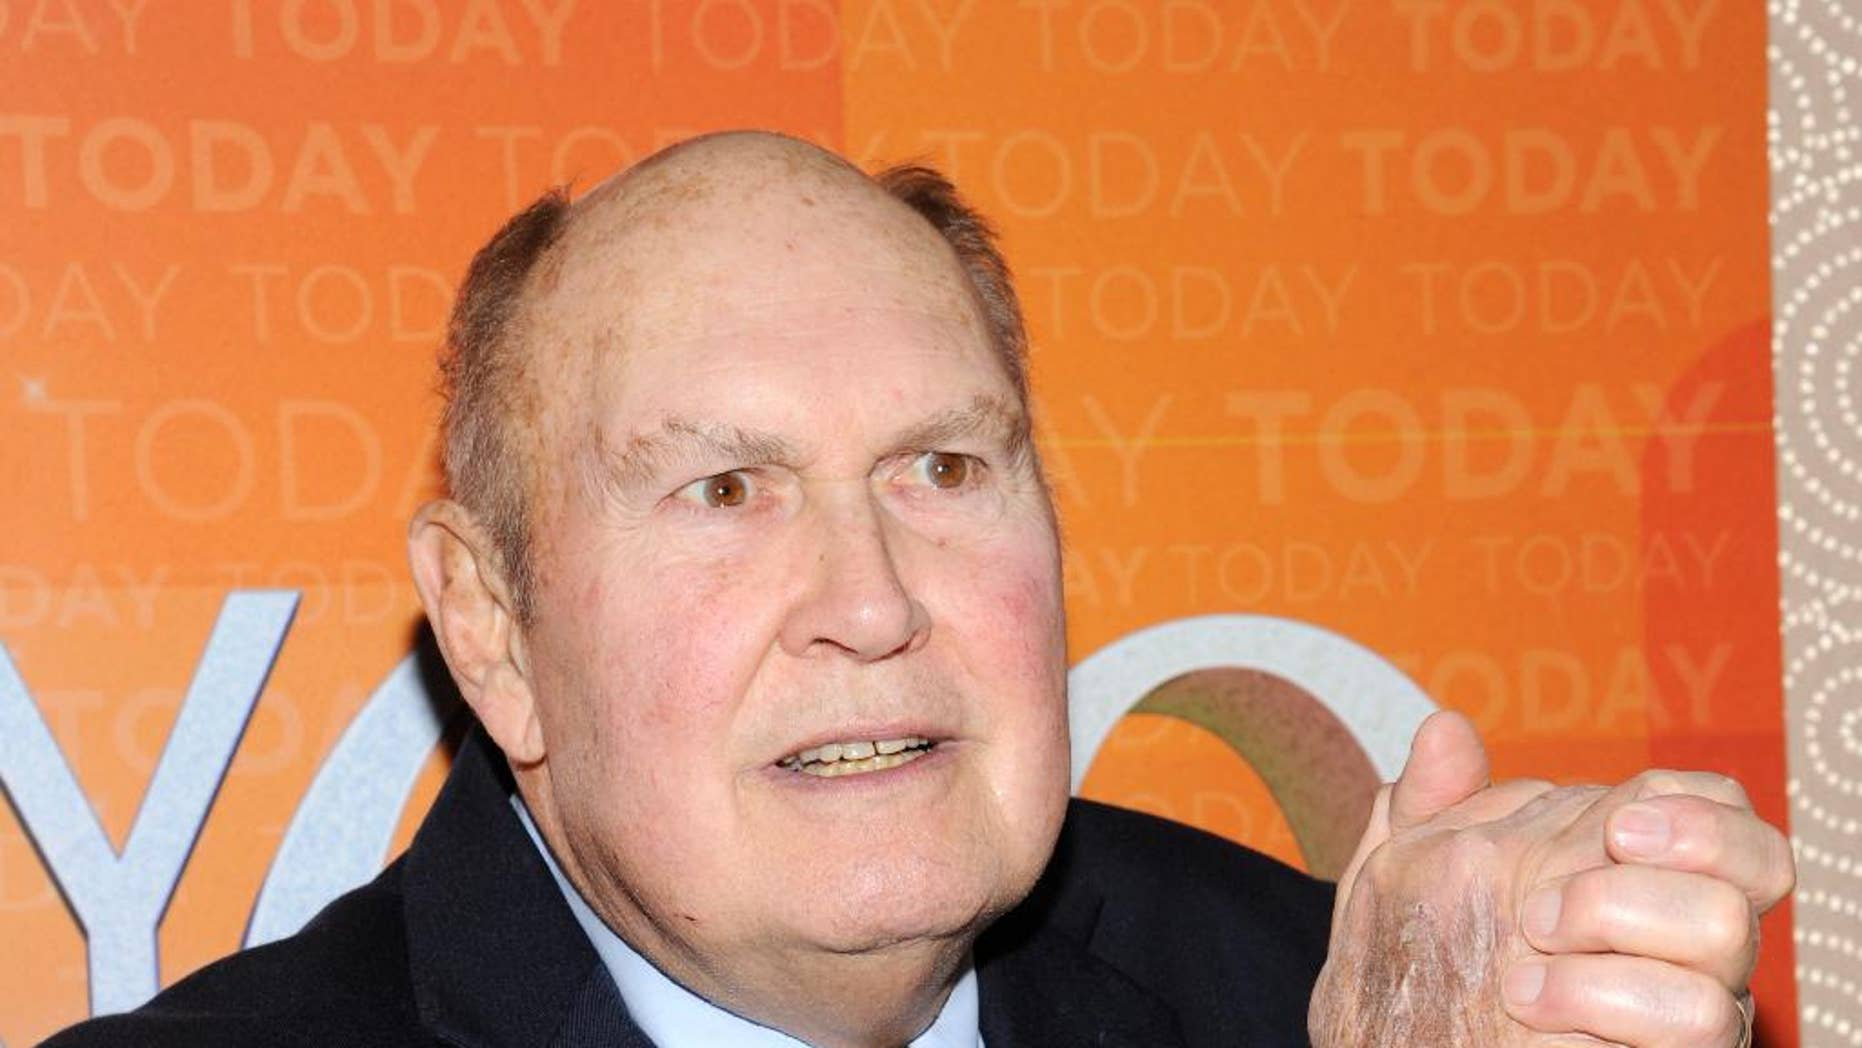 """FILE - This Jan. 12, 2012 file photo shows """"Today"""" show personality Willard Scott a the show's 60th anniversary celebration in New York. NBC says 80-year-old Willard Scott has tied the knot with his longtime partner. The veteran """"Today"""" show personality and Paris Keena were wed Tuesday in Fort Myers, Fla. They have been together for about 11 years, said """"Today"""" host Matt Lauer in sharing the news on Wednesday morning's telecast. (AP Photo/Evan Agostini, File)"""